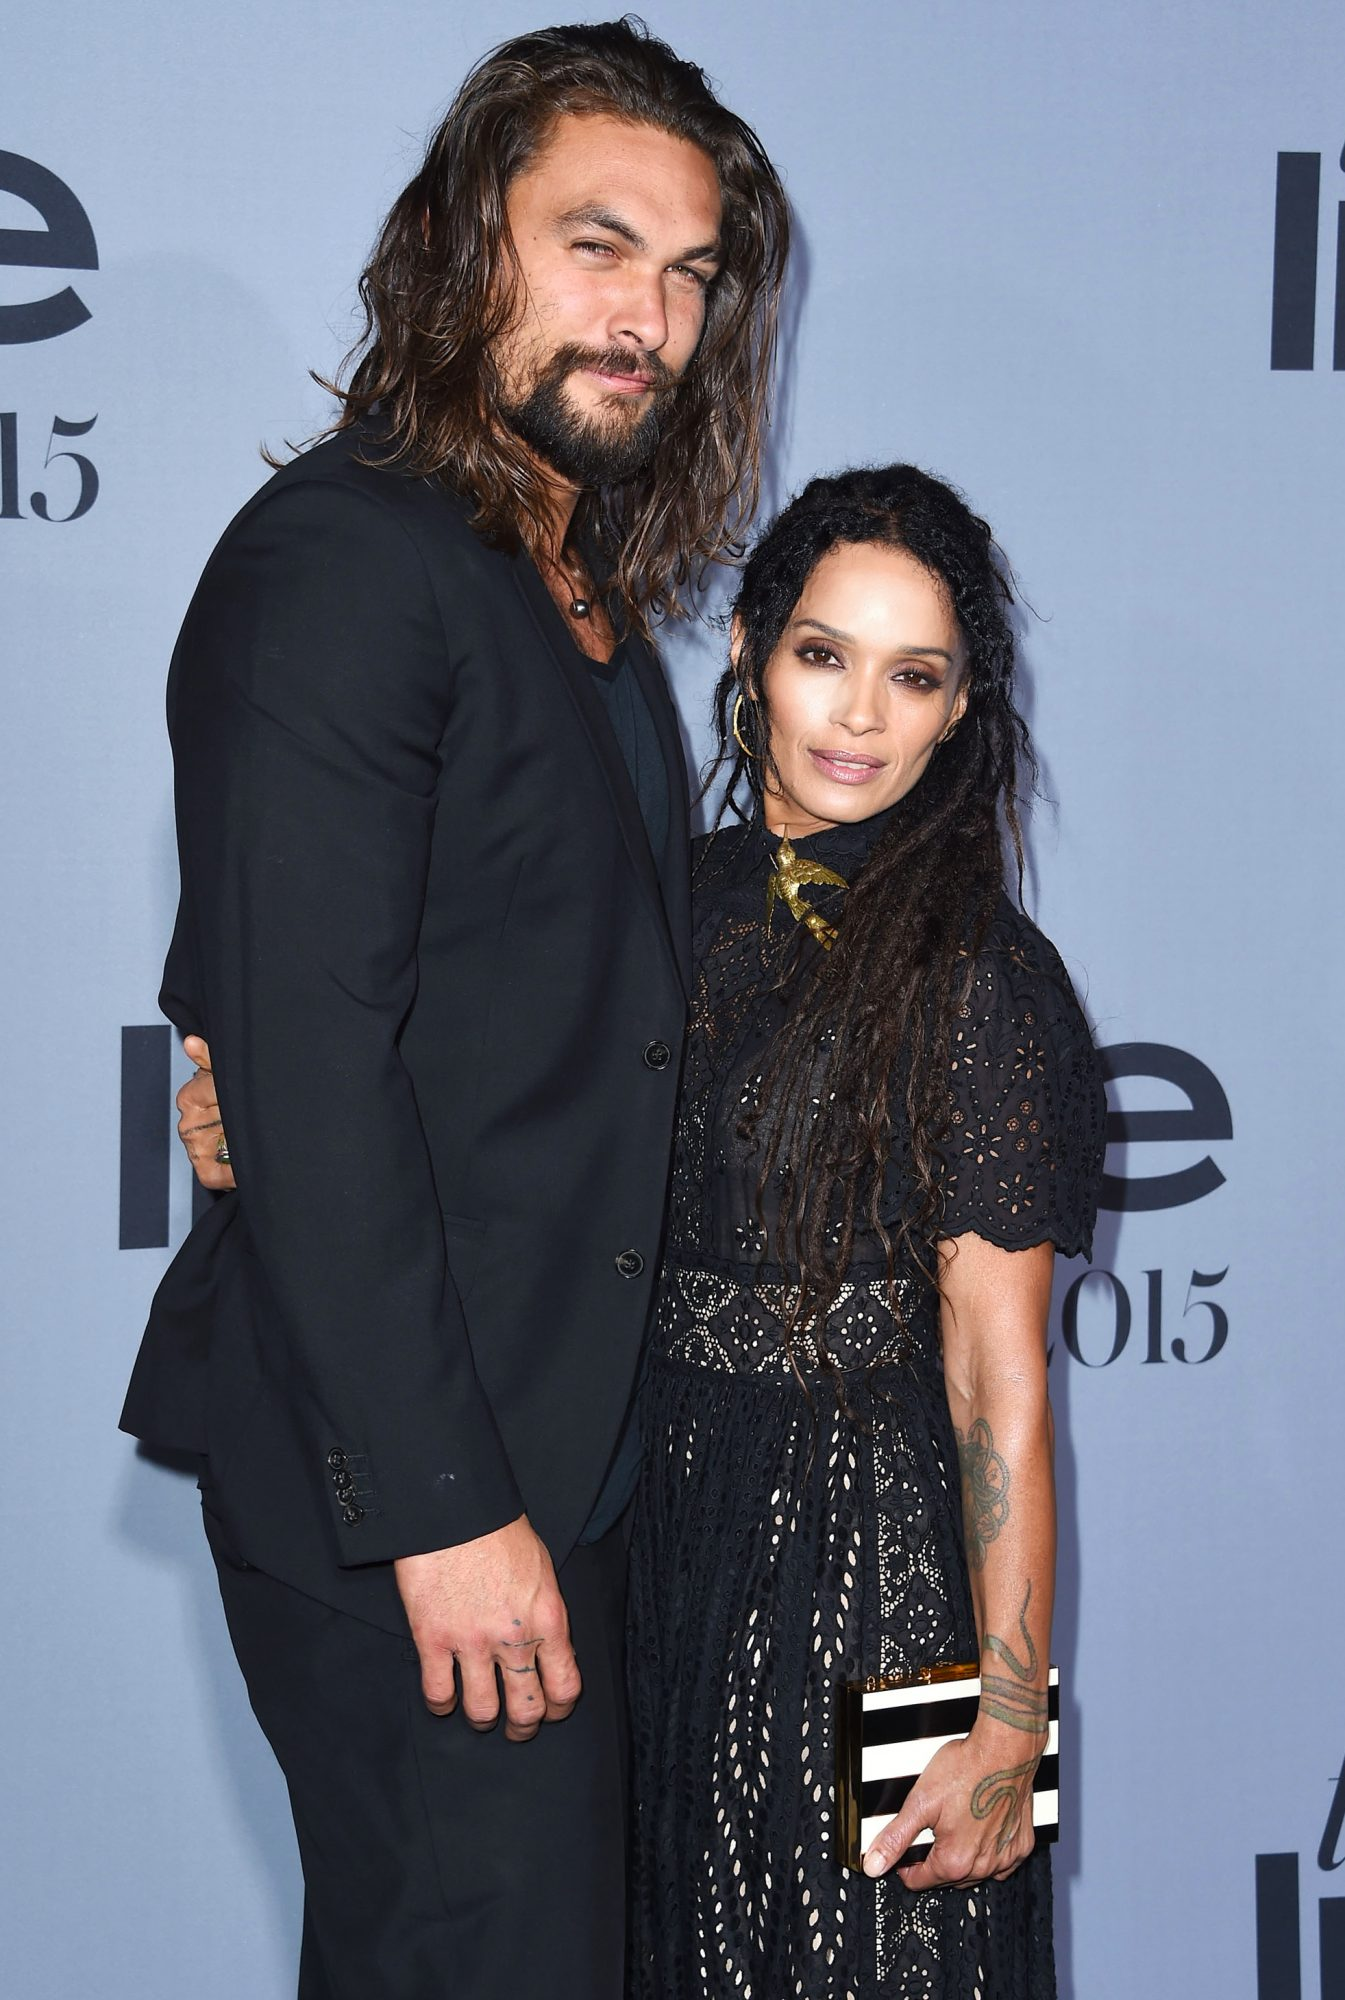 Jason Momoa Wanted His and Lisa Bonet's Wedding to Remain Private